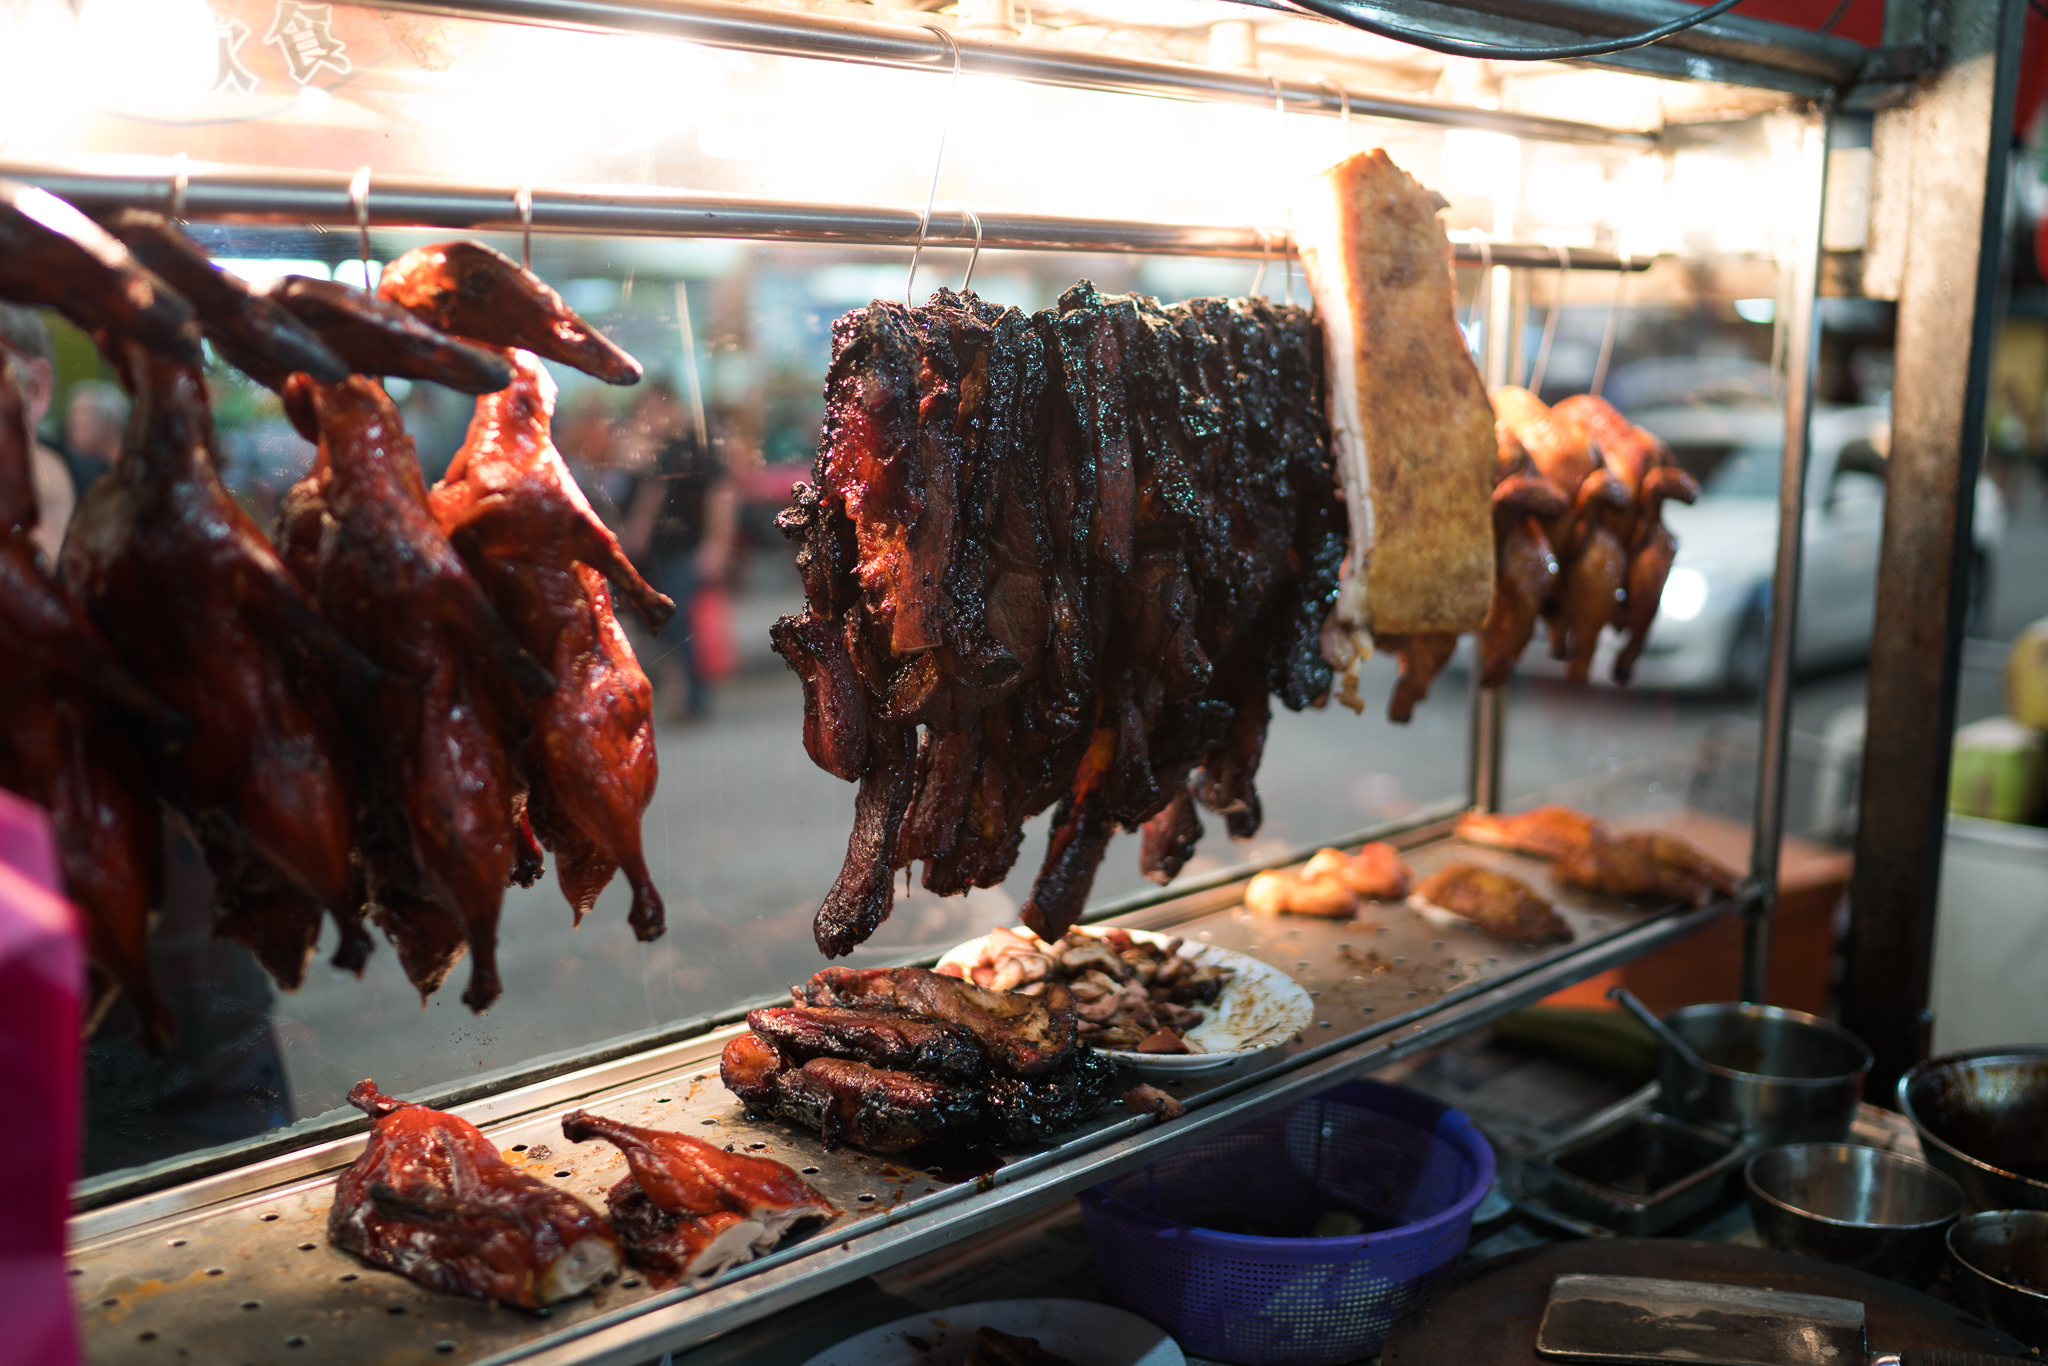 Bacon, duck, and pork belly at a street stall. Some of the best meat we've had in SE Asia.